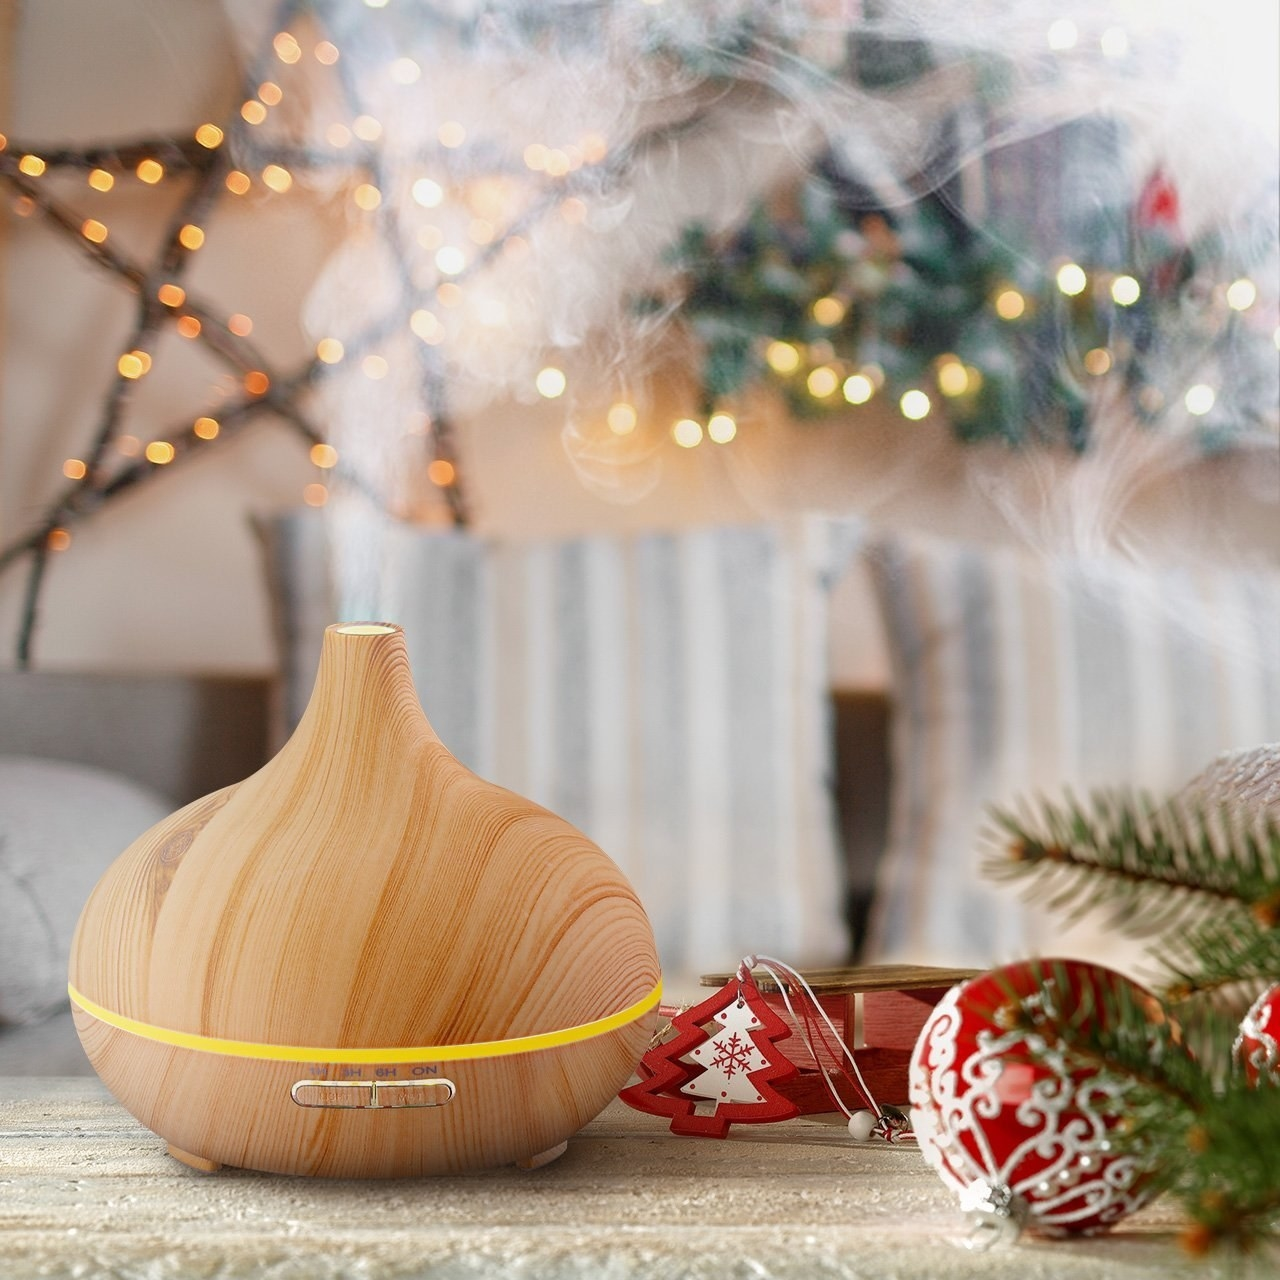 the essential oil diffuser near some holiday decorations